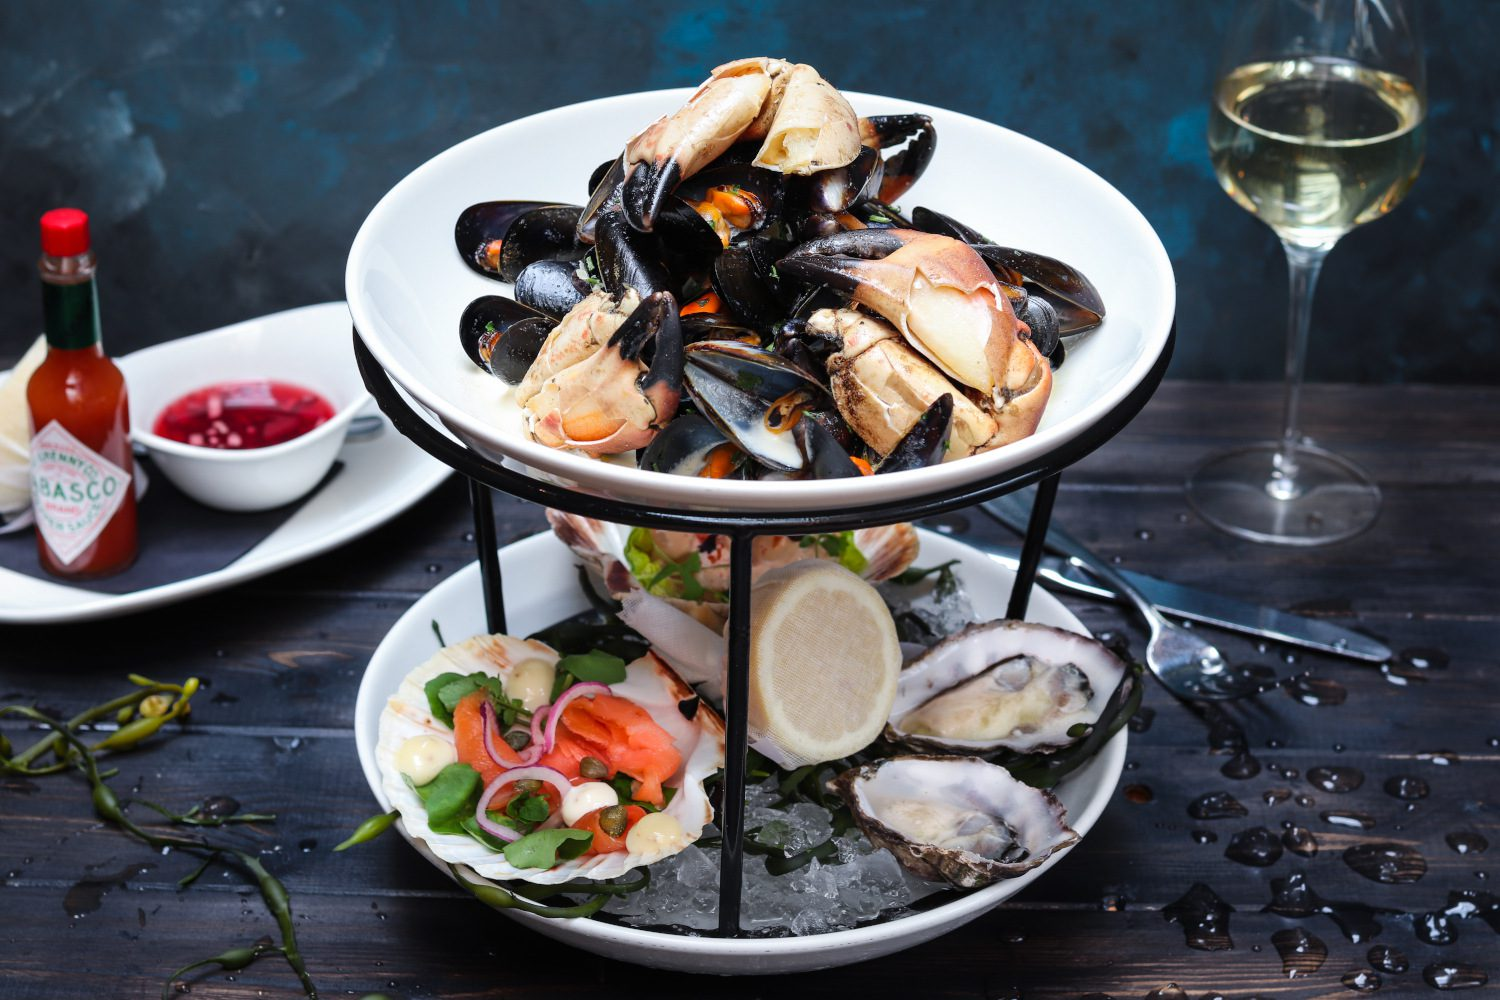 Cloudy Bay Wine Announce Collaboration with SOLE Seafood and Grill